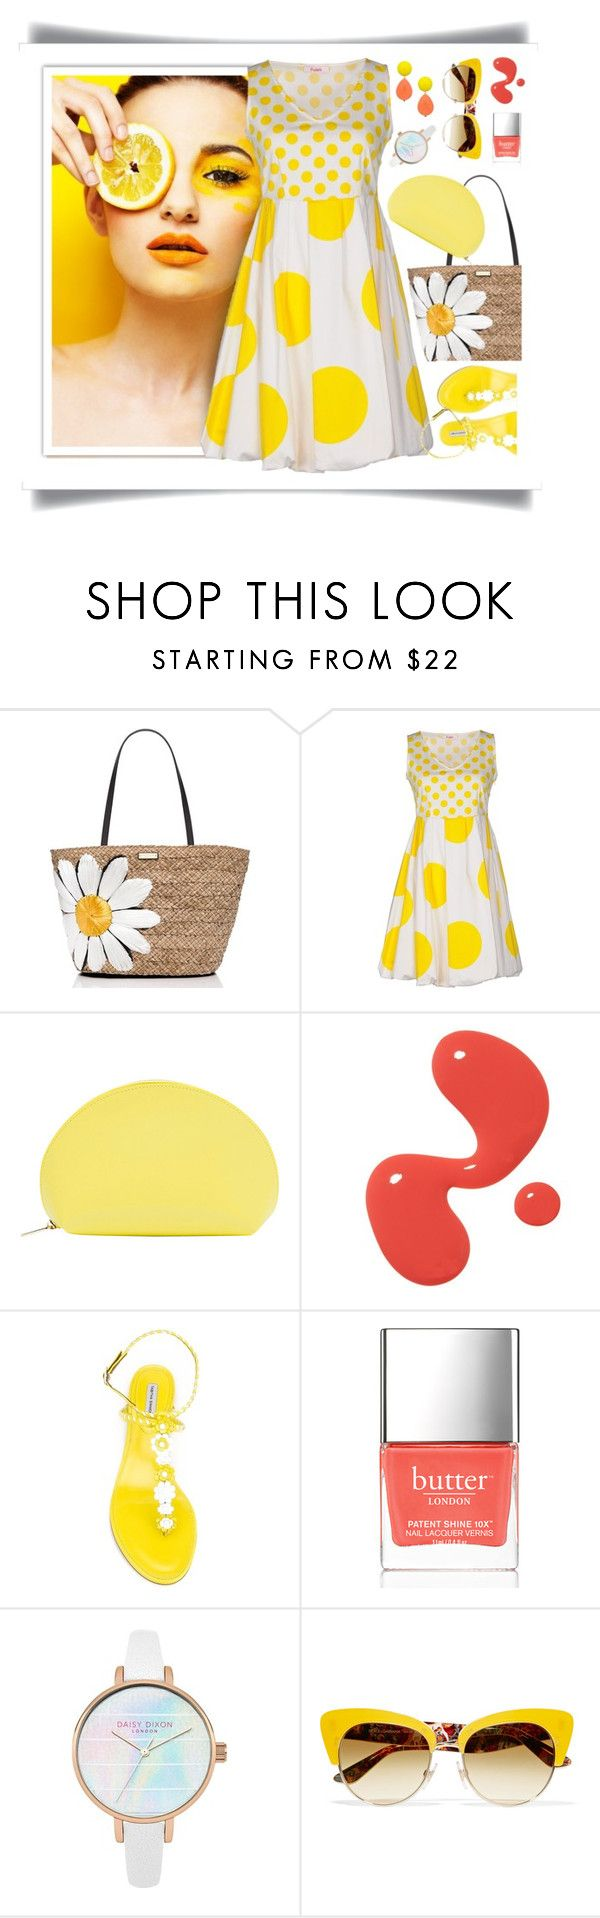 """Lemon  Drop"" by petalp ❤ liked on Polyvore featuring Kate Spade, Blugirl Folies, Paperthinks, Tabitha Simmons, Butter London, Dolce&Gabbana, David Aubrey, dress and ootd"